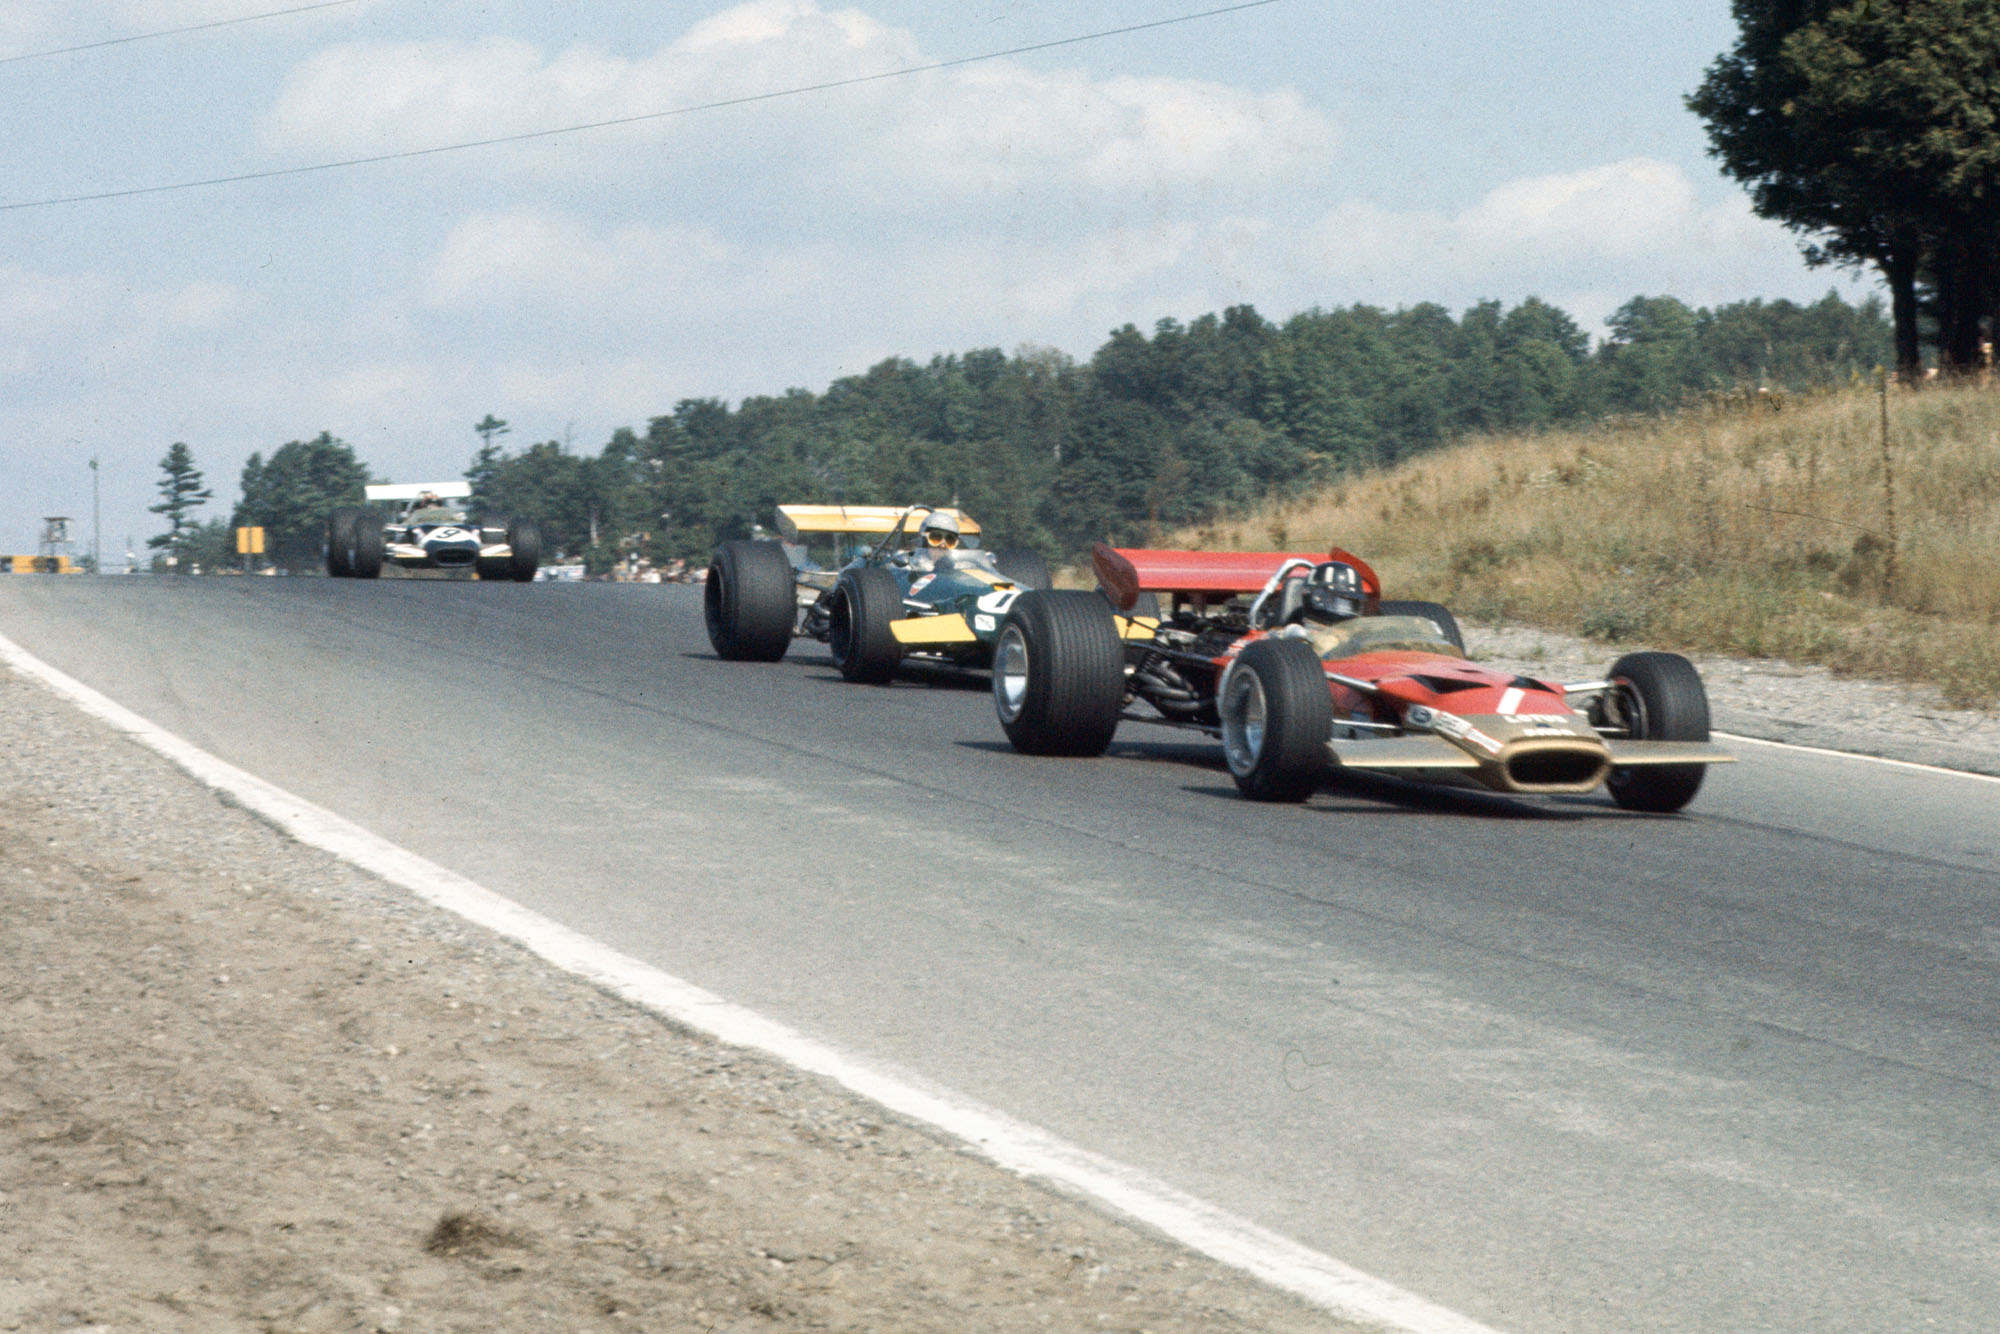 Graham Hill at the 1969 Canadian Grand Prix